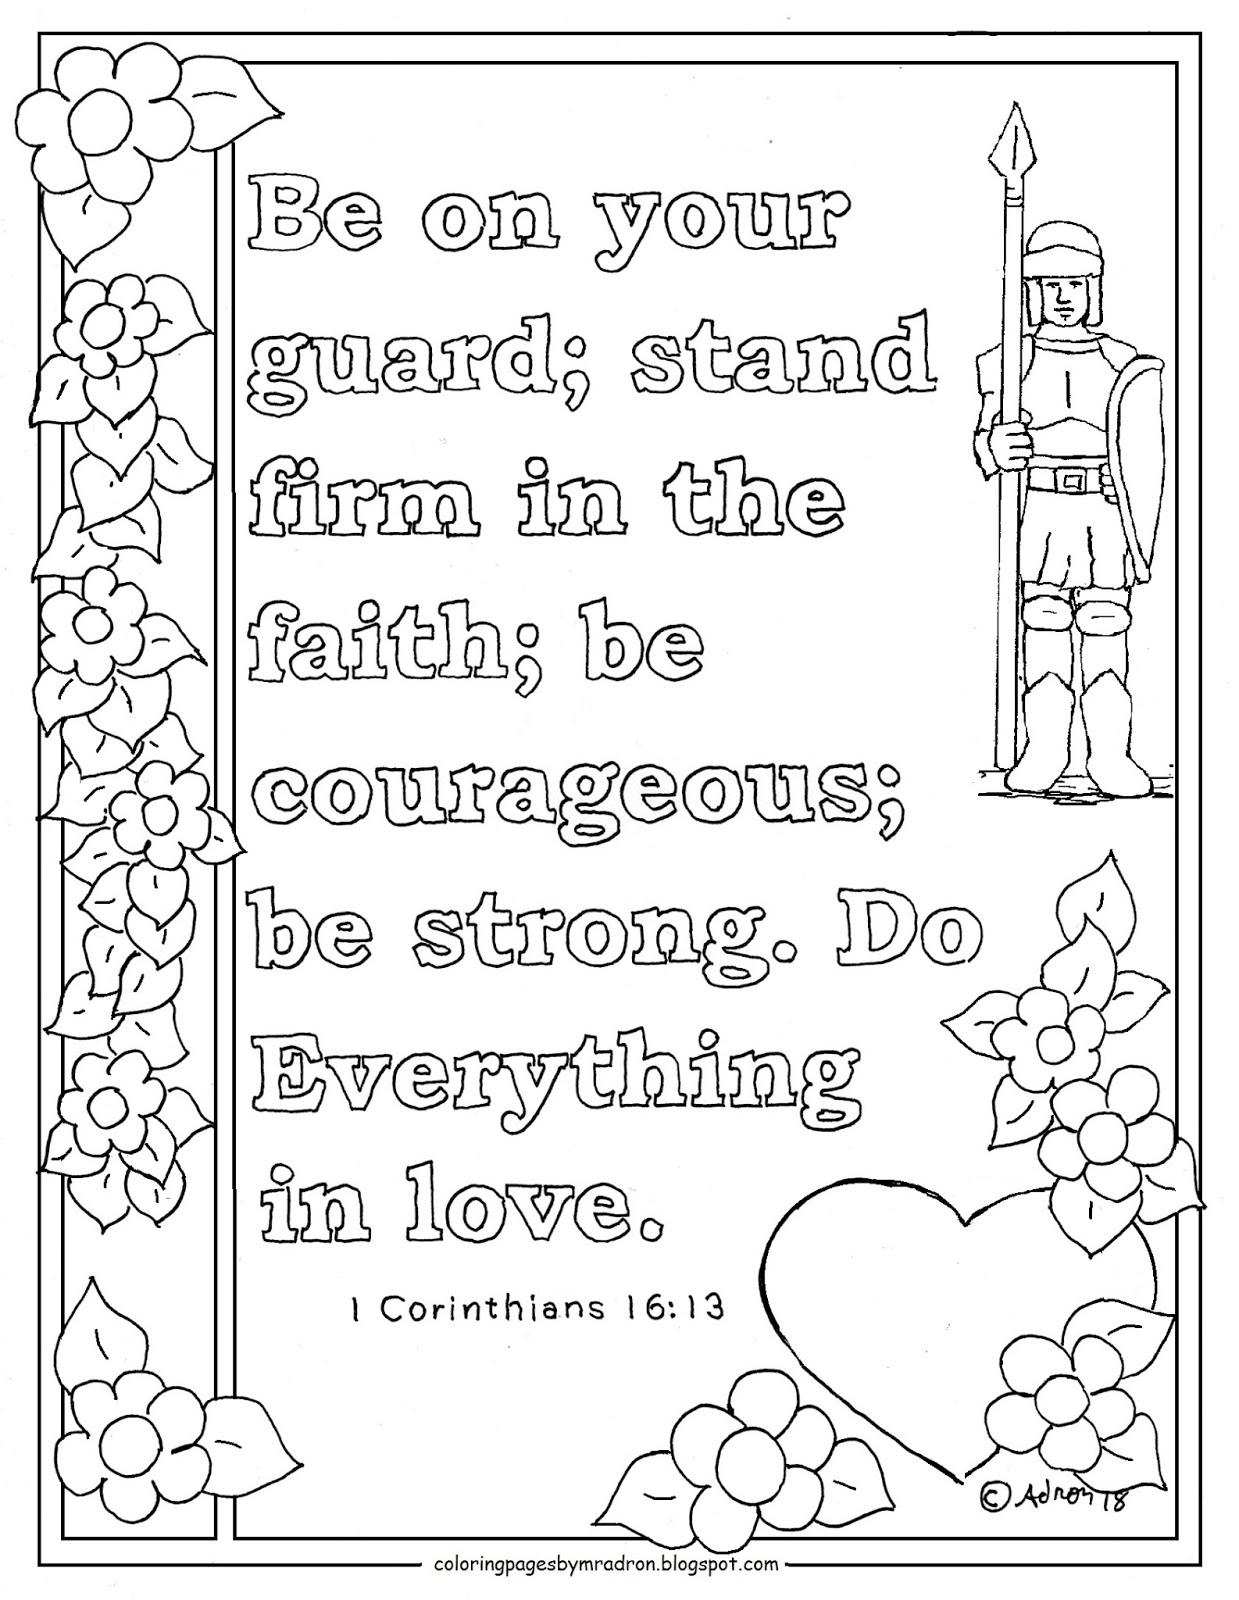 Coloring Pages For Kids By Mr Adron 1 Corinthians 16 13 Print And Color Page Be On Your Gaurd